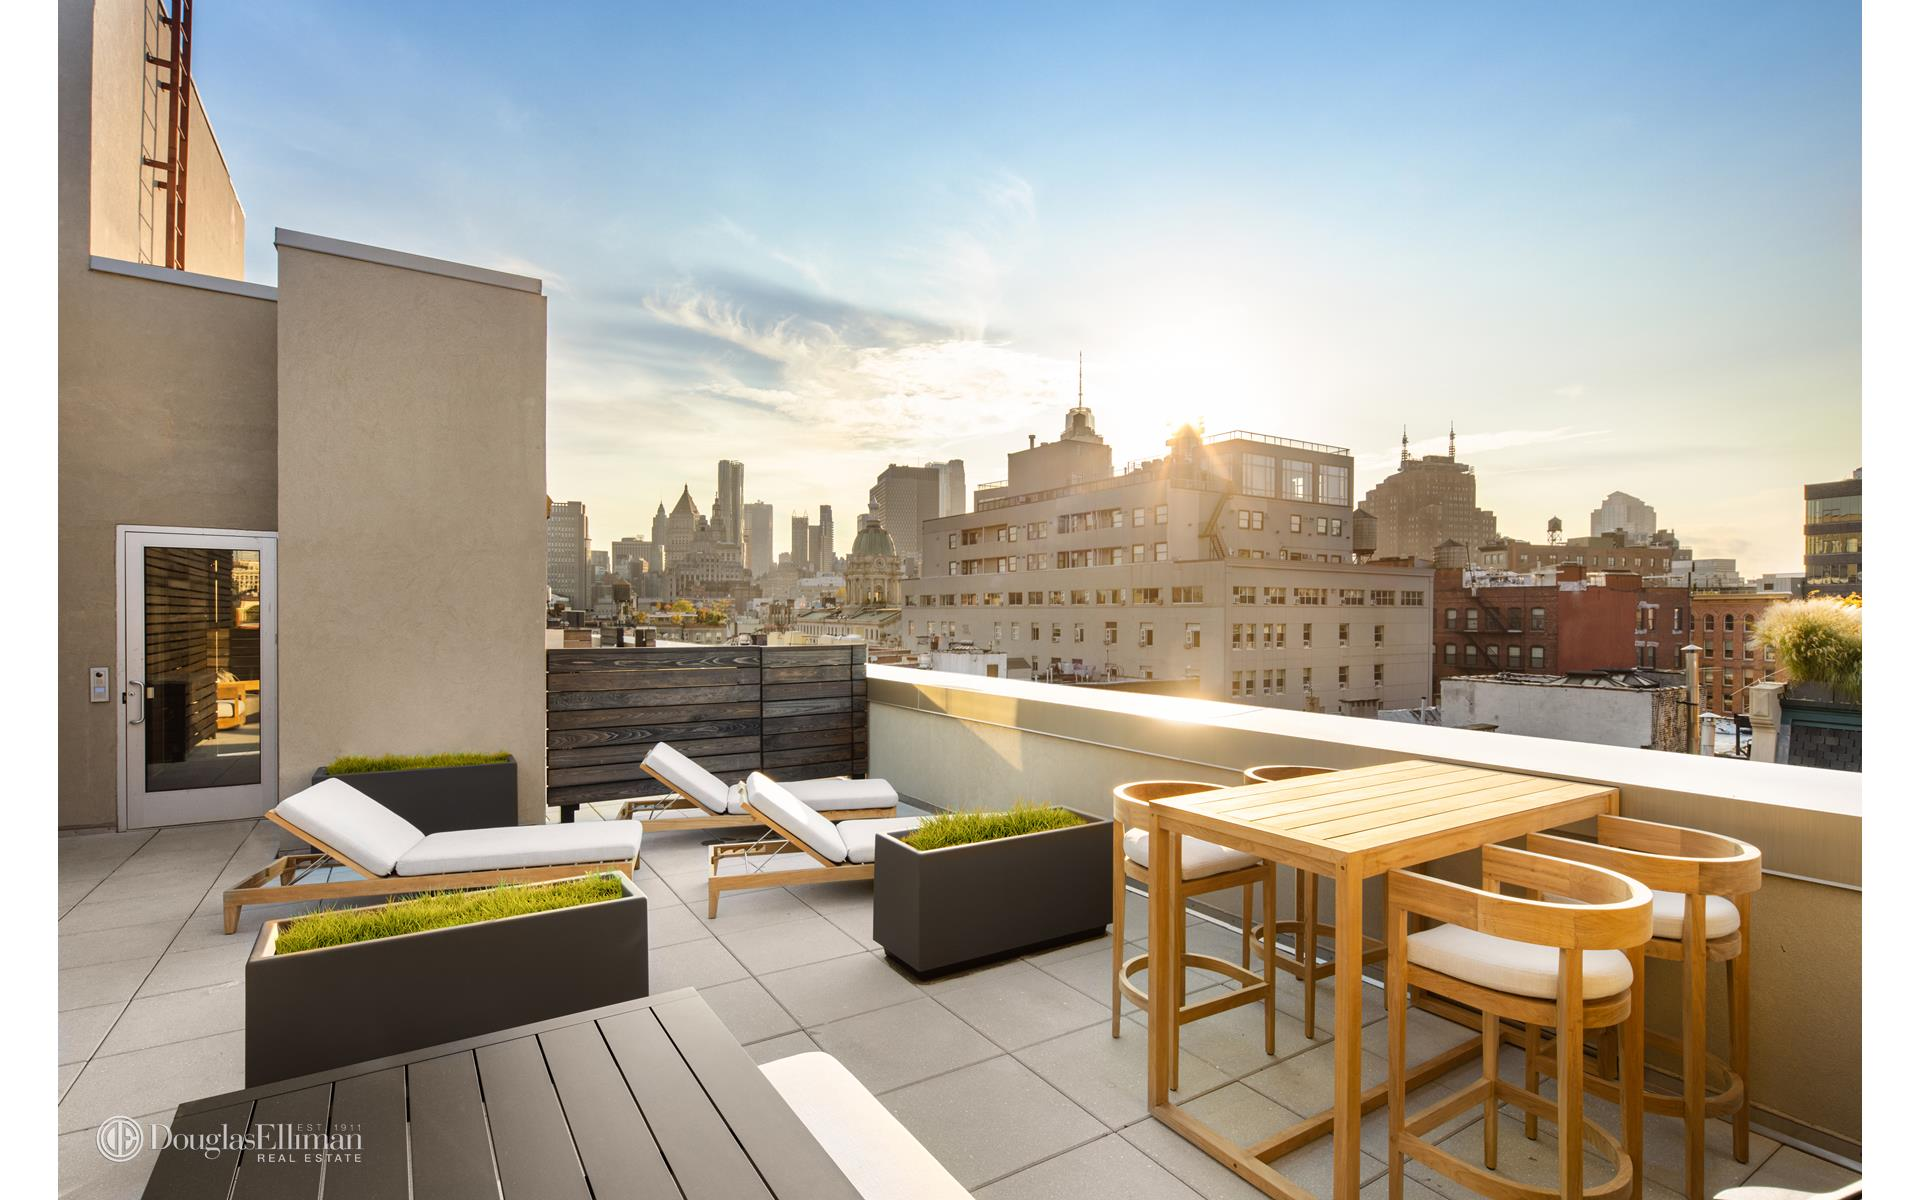 Presenting Penthouse A: The One and Only Four-Bedroom Penthouse Residence at Andre Kikoski & Kravitz Design's NoLita Masterpiece.    Immediate Occupancy at Downtown Manhattan's best selling New Development, Final Residences Remain. Offering limited in-person and virtual appointments and 50% off parking for 10 years for select purchasers.    Staged in collaboration with Ligne Roset & Modernist Cuisine Gallery, Penthouse A offers the best of indoor and outdoor living in Downtown Manhattan. Spanning over 3,017 SQFT with an additional 2,275 SQFT of exterior living across a private terrace and roof   deck, this unparalleled four bedroom, four-and-one-half bathroom penthouse is truly the best NoLita has to offer.    Upon entry, stunning white oak hardwood floors lend way to the 45 long great room, with a curtain wall of floor-to-ceiling windows offering exceptional city views and abundant natural light. The open concept living and dining wing boasts a board-form concrete   surround fireplace, stunning white oak floors and a curtain wall of floor-to-ceiling windows. Just outside, the first of two private outdoor spaces awaits with a 1,170 SQFT private corner terrace overlooking Downtown.    The well-appointed kitchen suits any level chef, fully outfitted with a suite of Gaggenau appliances, marble floating island with a custom oak bar top accented by a rear pewter topped counter, marble backsplash, matte-white cabinetry and two integrated oak   paneled refrigerators. Just behind the kitchen youll find a 6 x 5 pantry for all your cooking essentials, and adjacent staircase leading up to the private 1,105 SQFT sun deck sun deck equipped with a BBQ grill. On the other side of the kitchen, a large laundry   room with LG washer and dryer included provides convenient space for storage.    Adjacent to the foyer, a jeweled powder room with a custom elm floating vanity with Bianco drama marble countertop and sink complements the backlit, illuminated satin nickel framed mirror and Ch